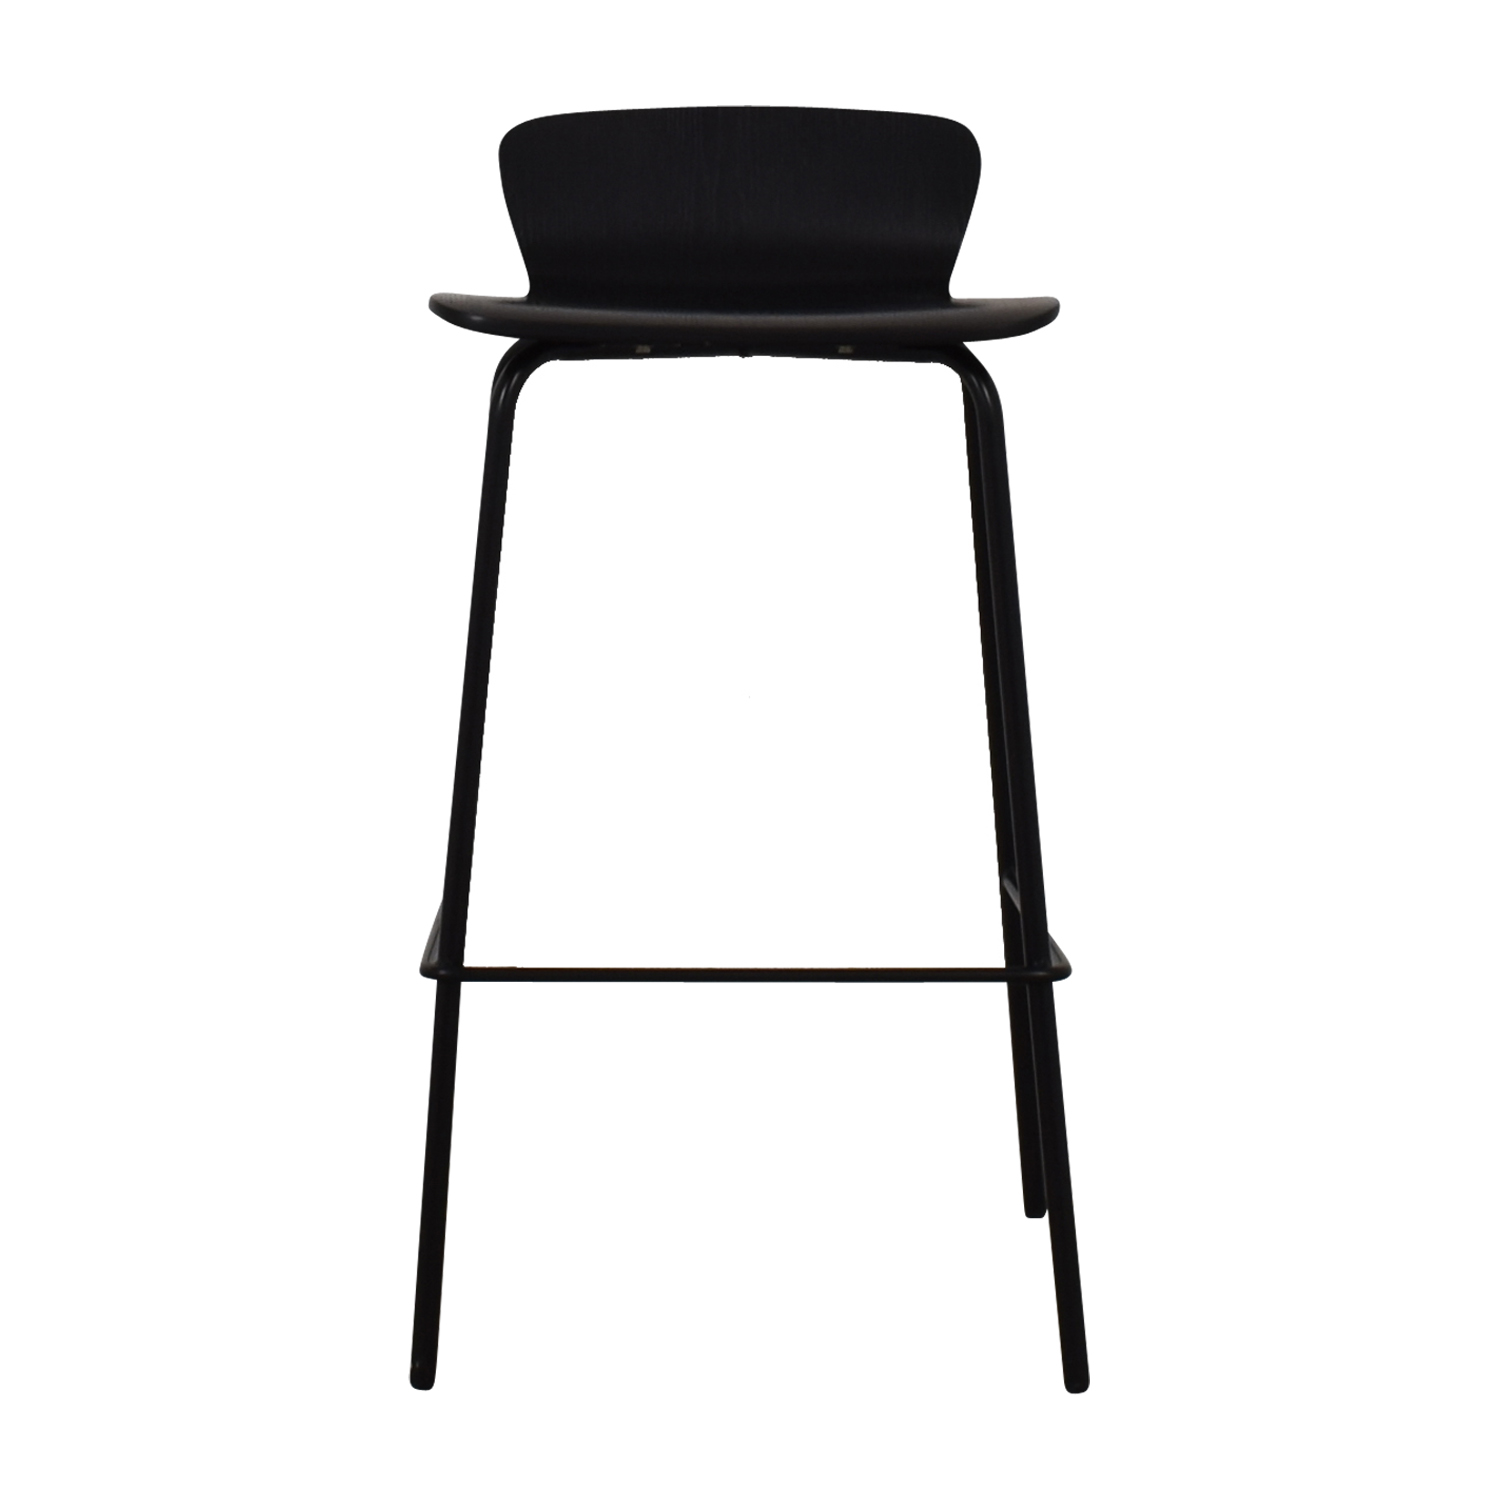 Crate & Barrel Felix Black Counter Bar Stool / Stools